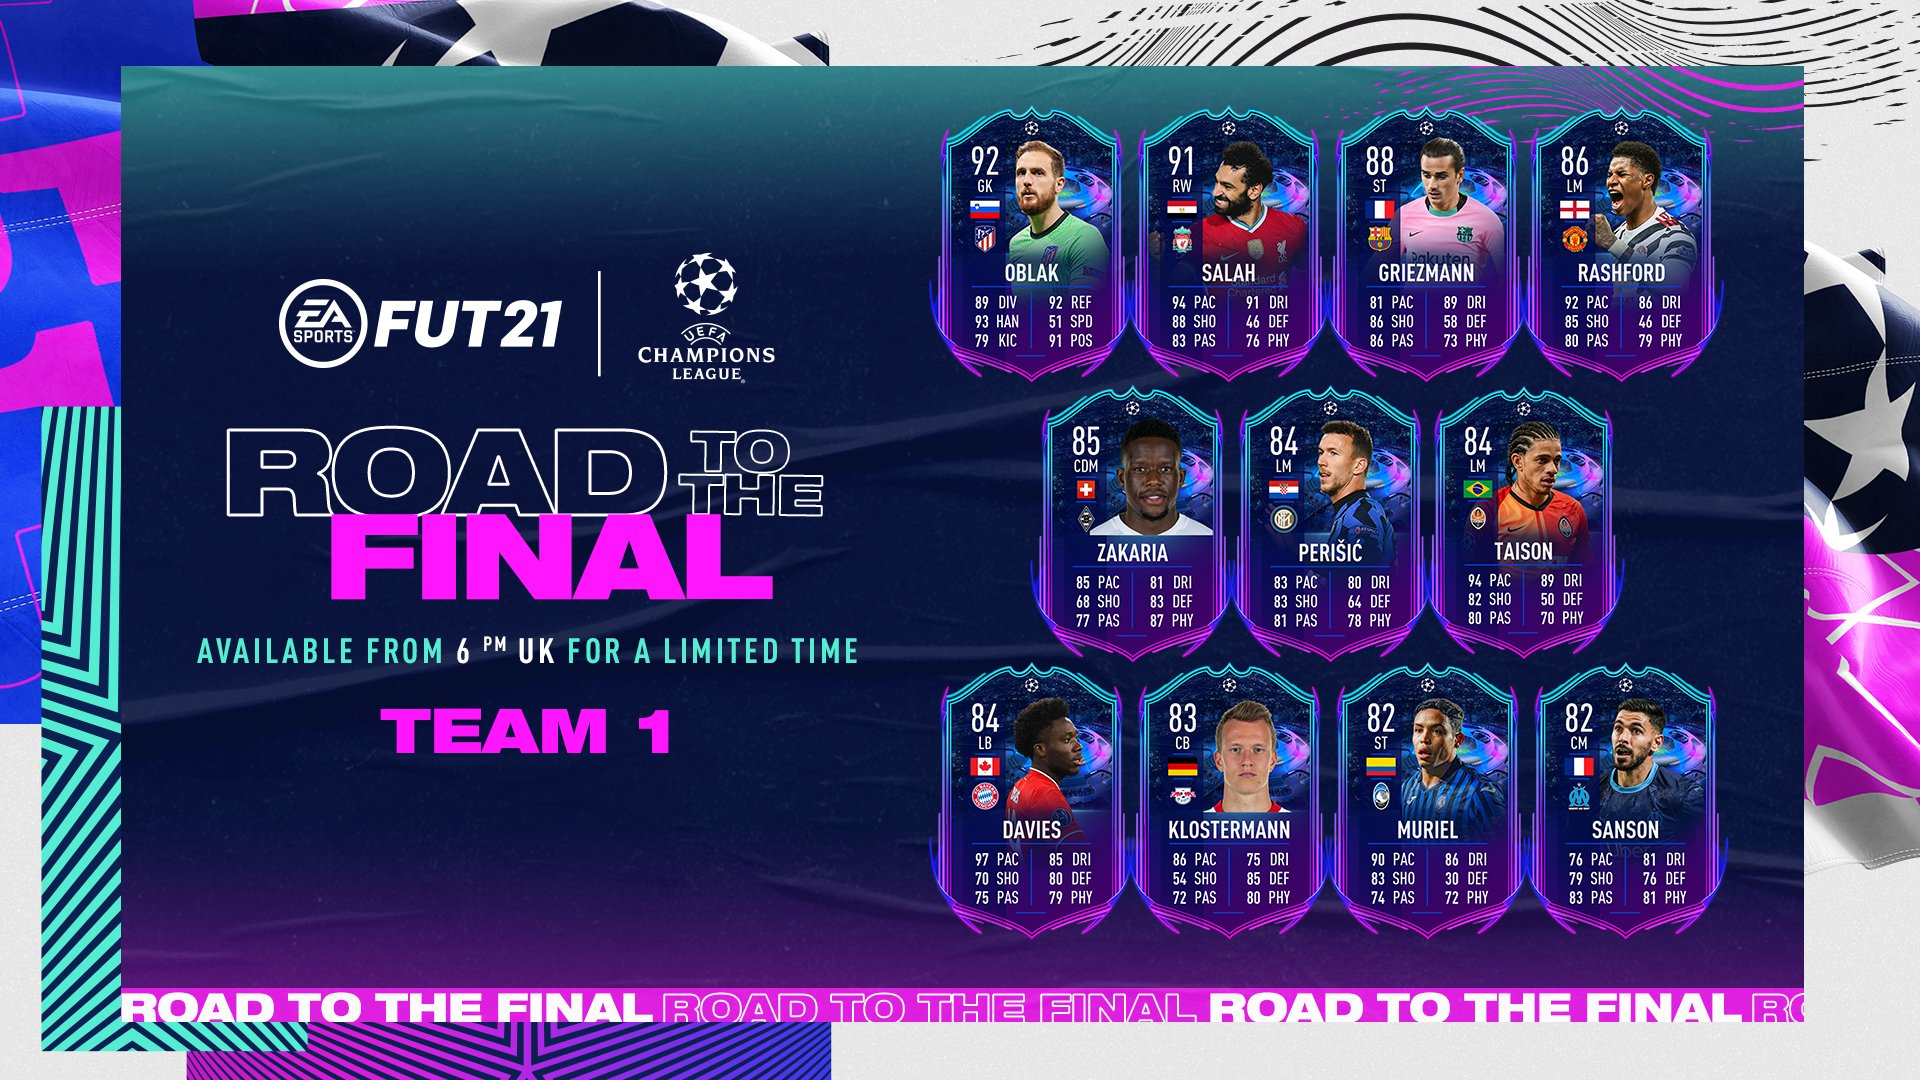 UEFA Champions League Road to the Final Players